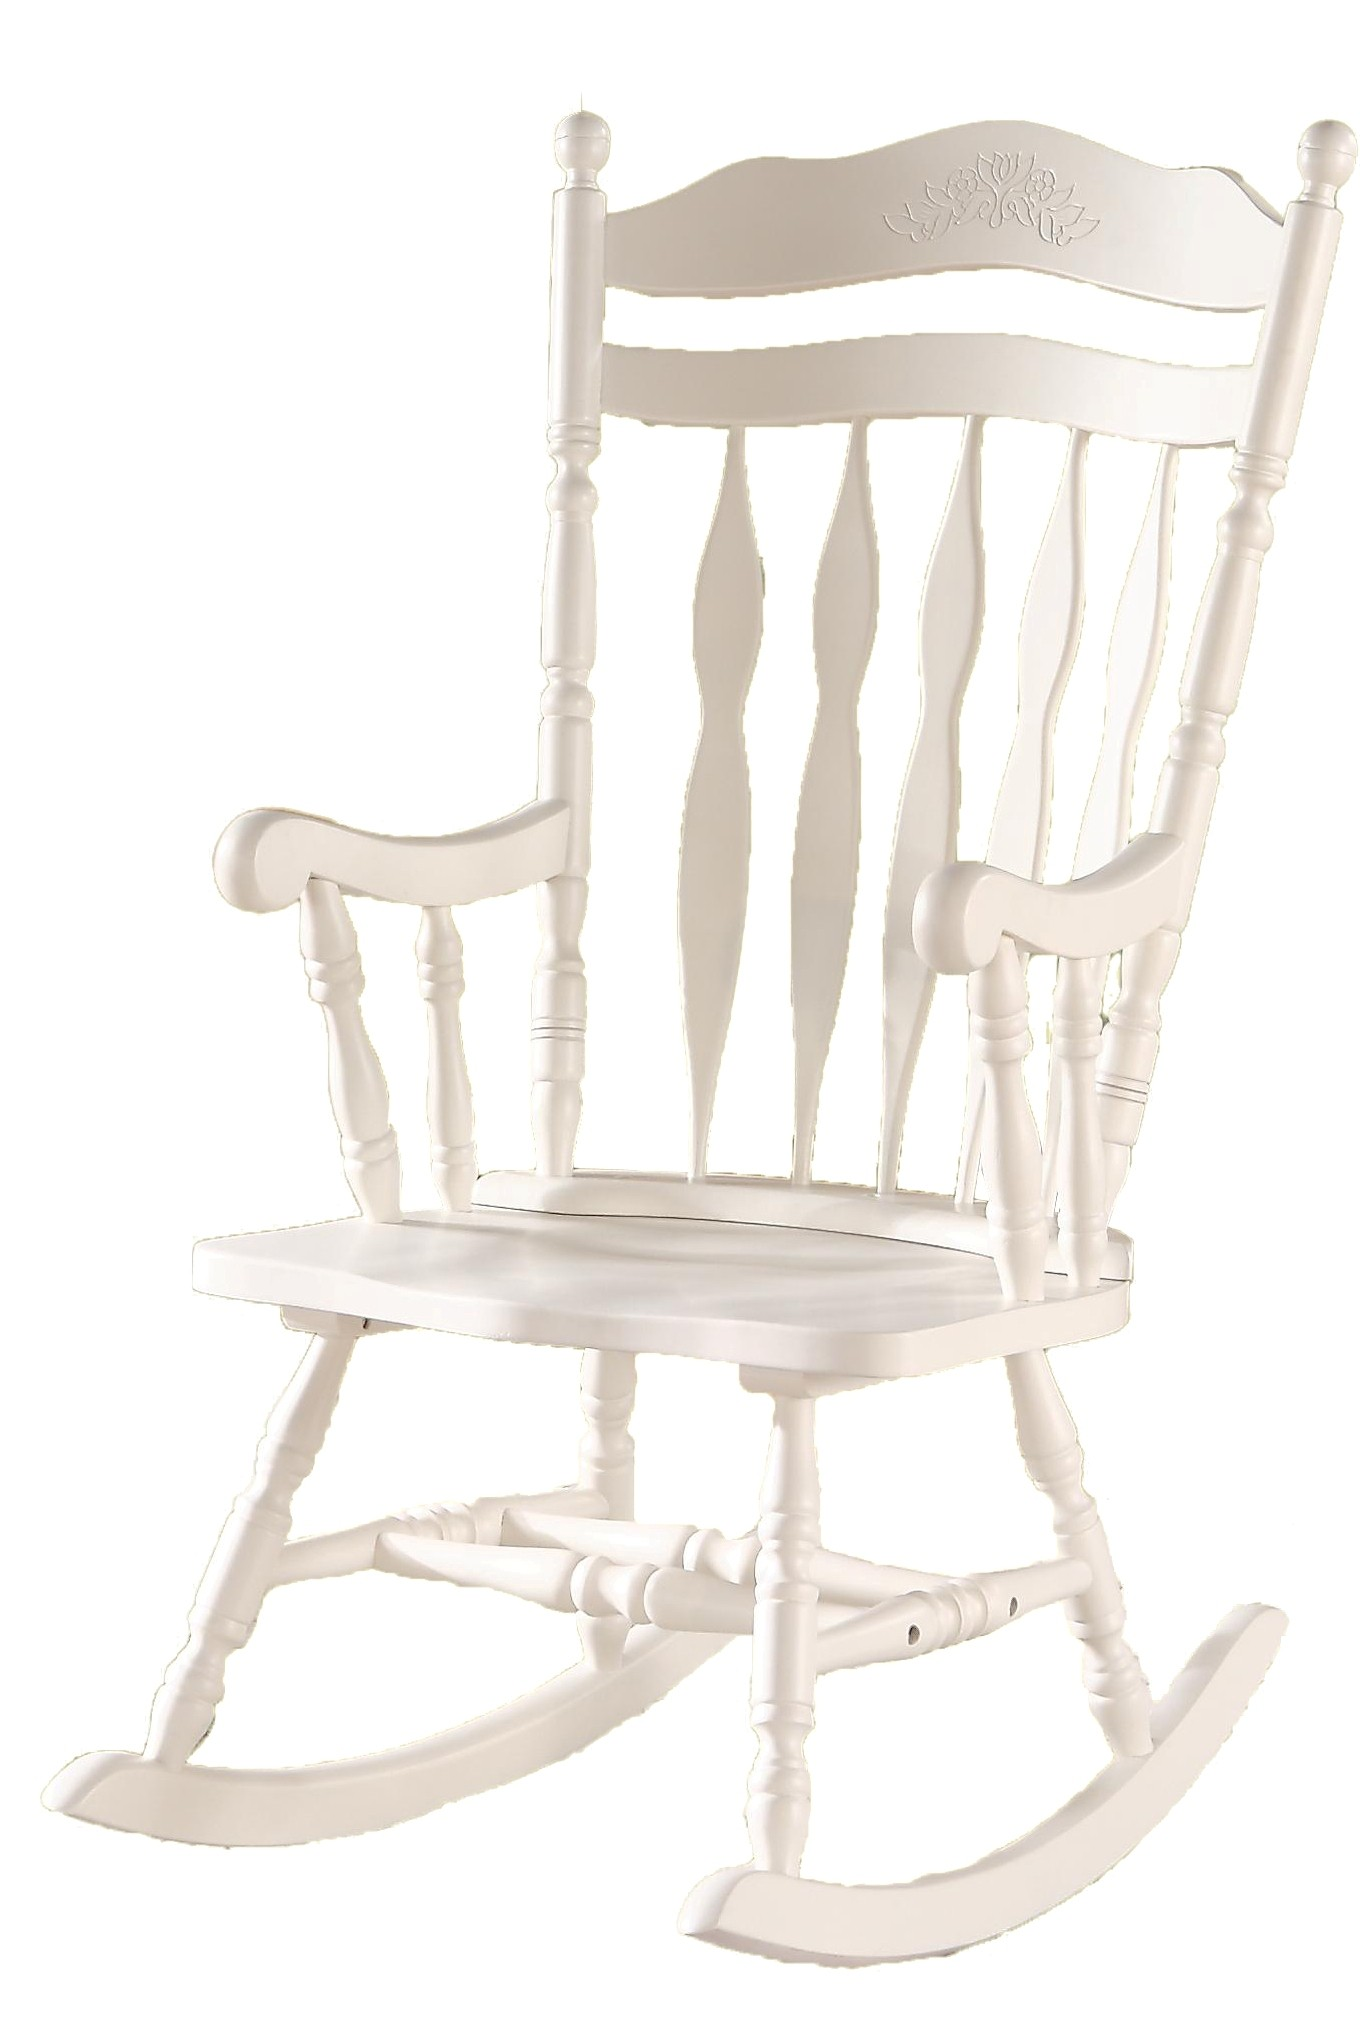 white rocking chairs for sale desk chair australia 1525 antique embossed back solid wood